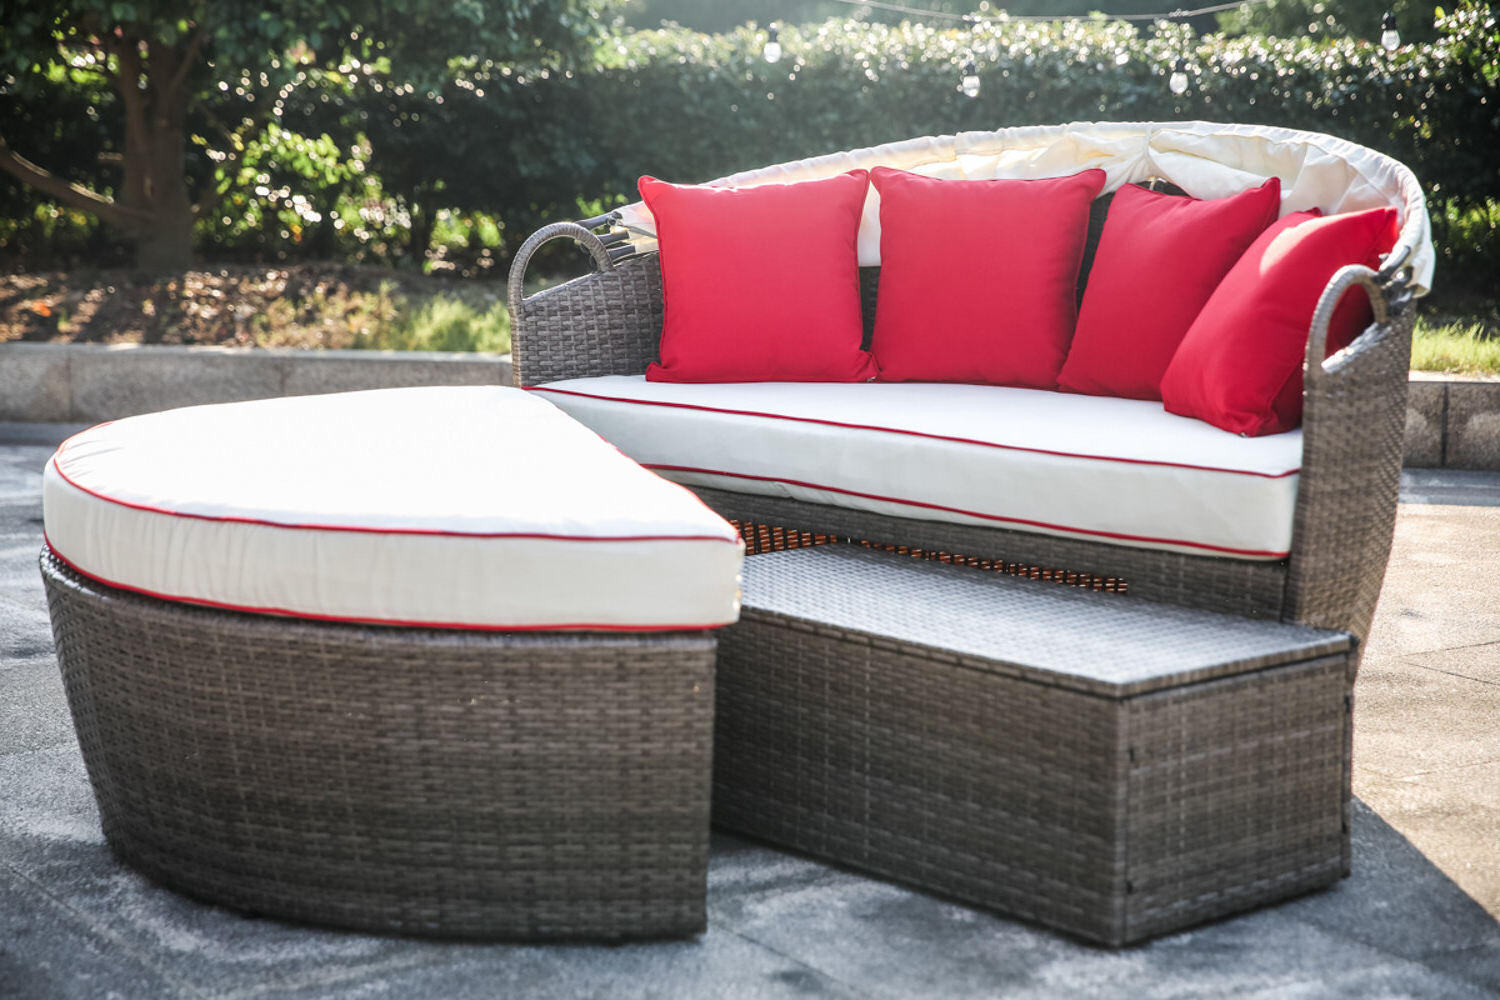 Falmouth Patio Daybeds With Cushions Inside Favorite Fansler Patio Daybed With Cushions (View 7 of 20)